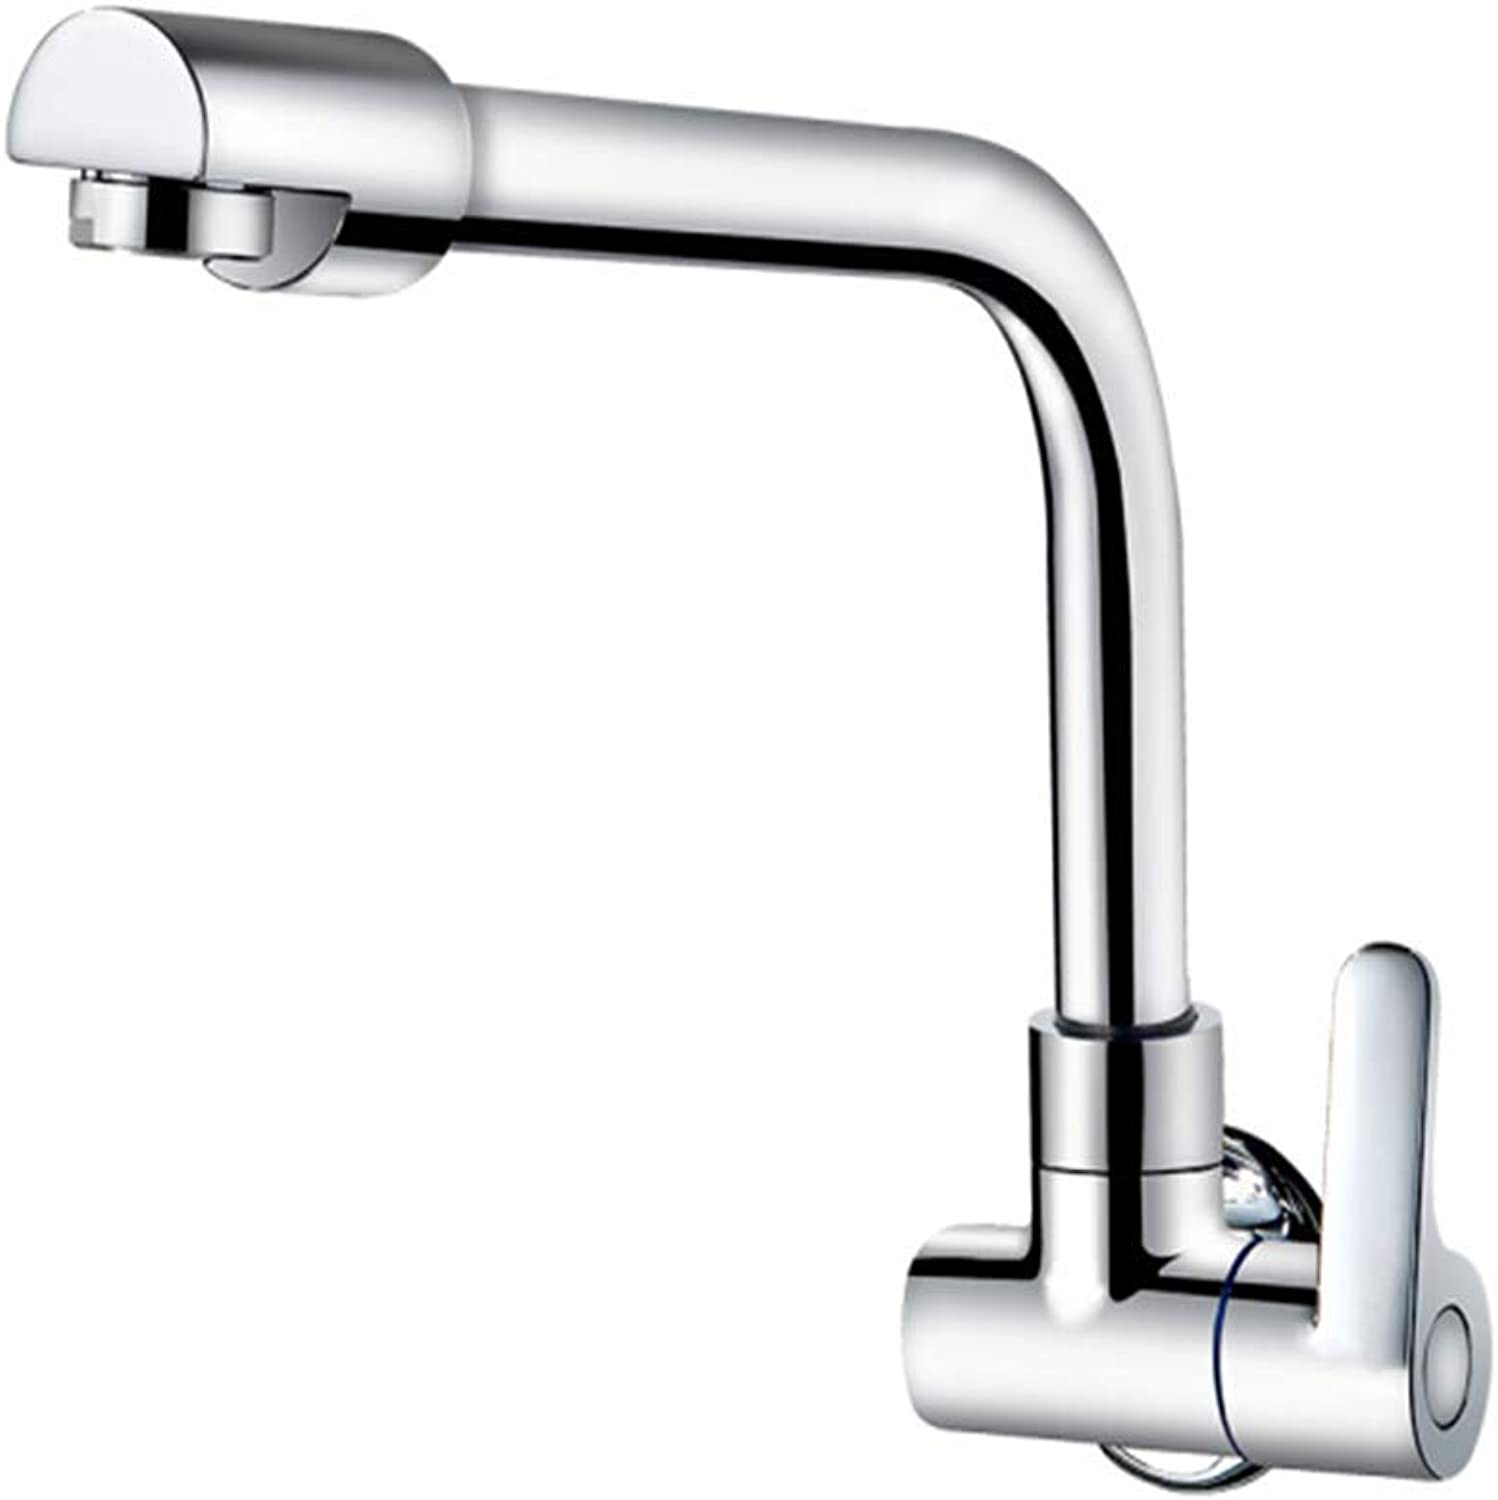 Counter Drinking Designer Archcopper Main Body 360 Degree redary Wall Type Single Cooling Kitchen Faucet